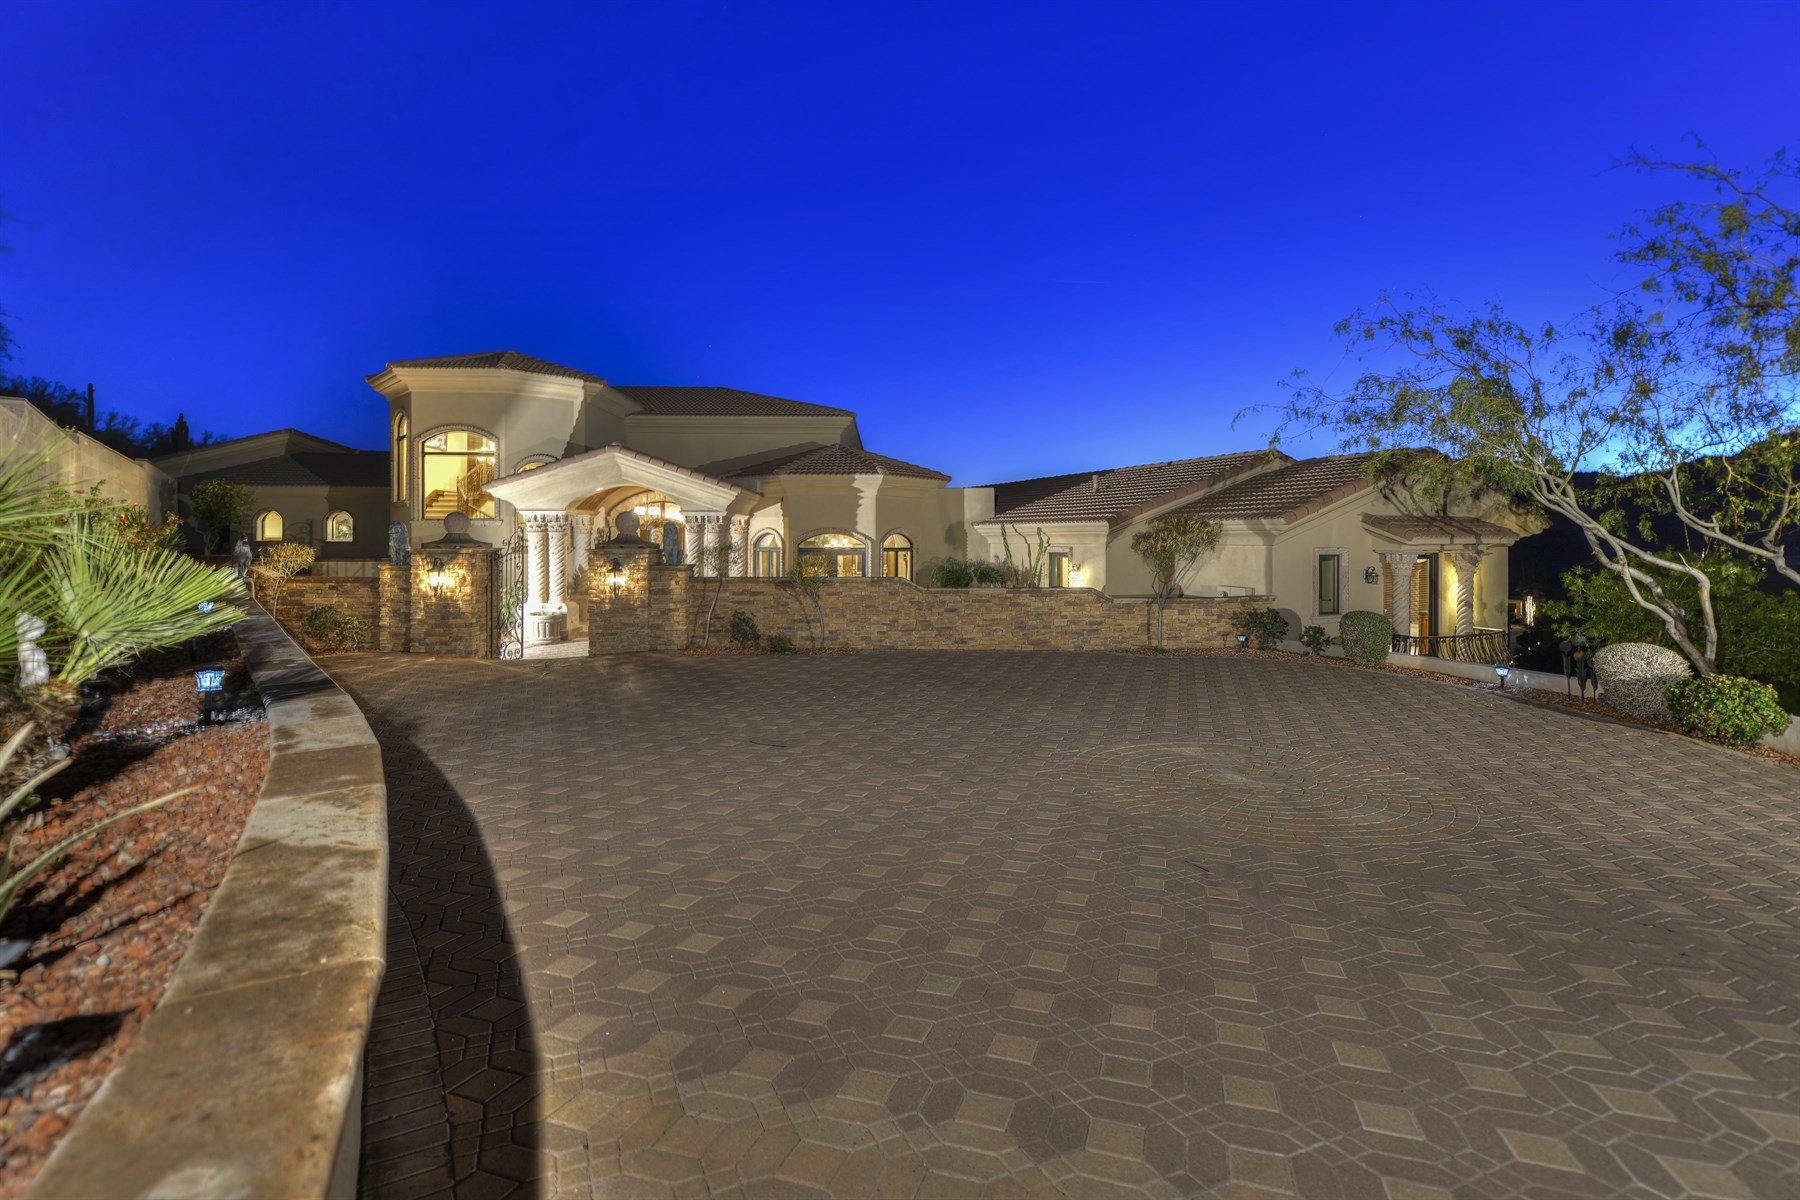 Villa per Vendita alle ore Beautiful European-inspired estate 7024 N Longlook Rd Paradise Valley, Arizona, 85253 Stati Uniti